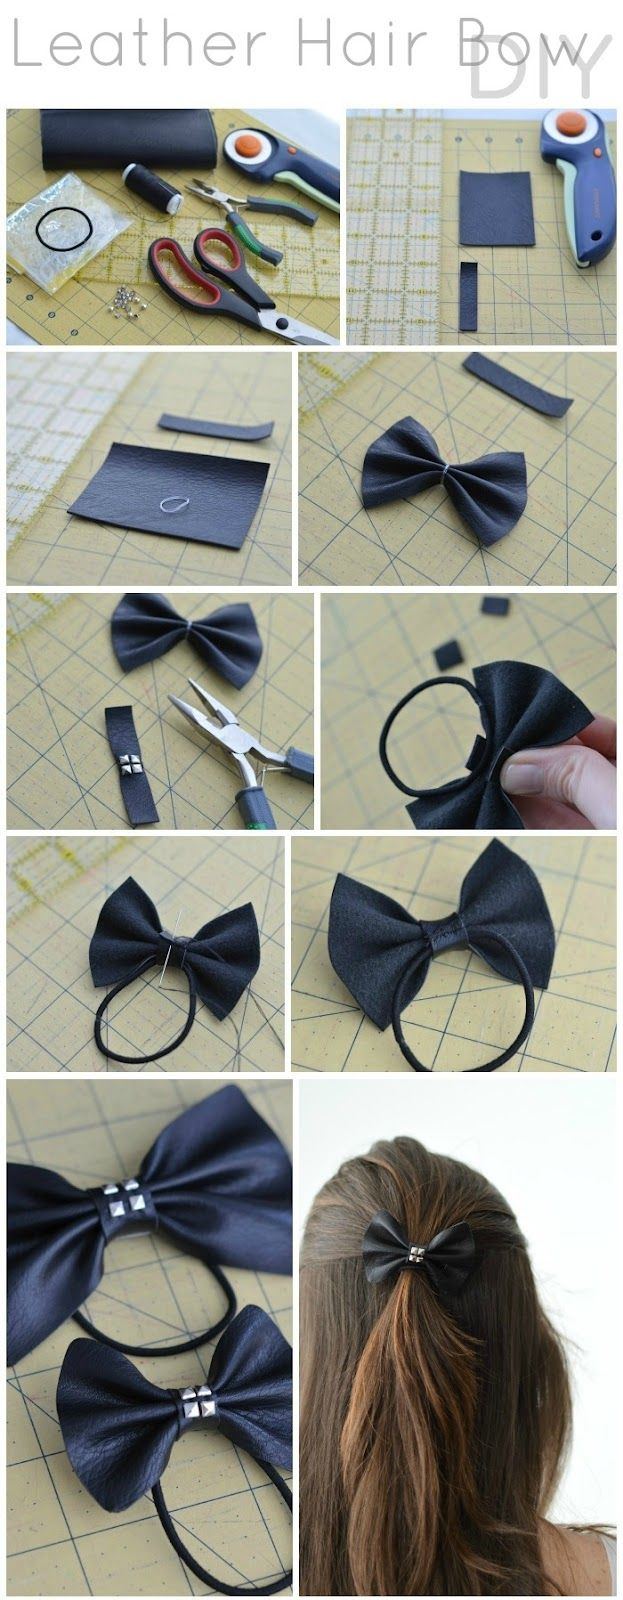 LEATHER HAIR BOW DIY - 23 BEAUTIFUL DIY HAIR ACCESSORIES